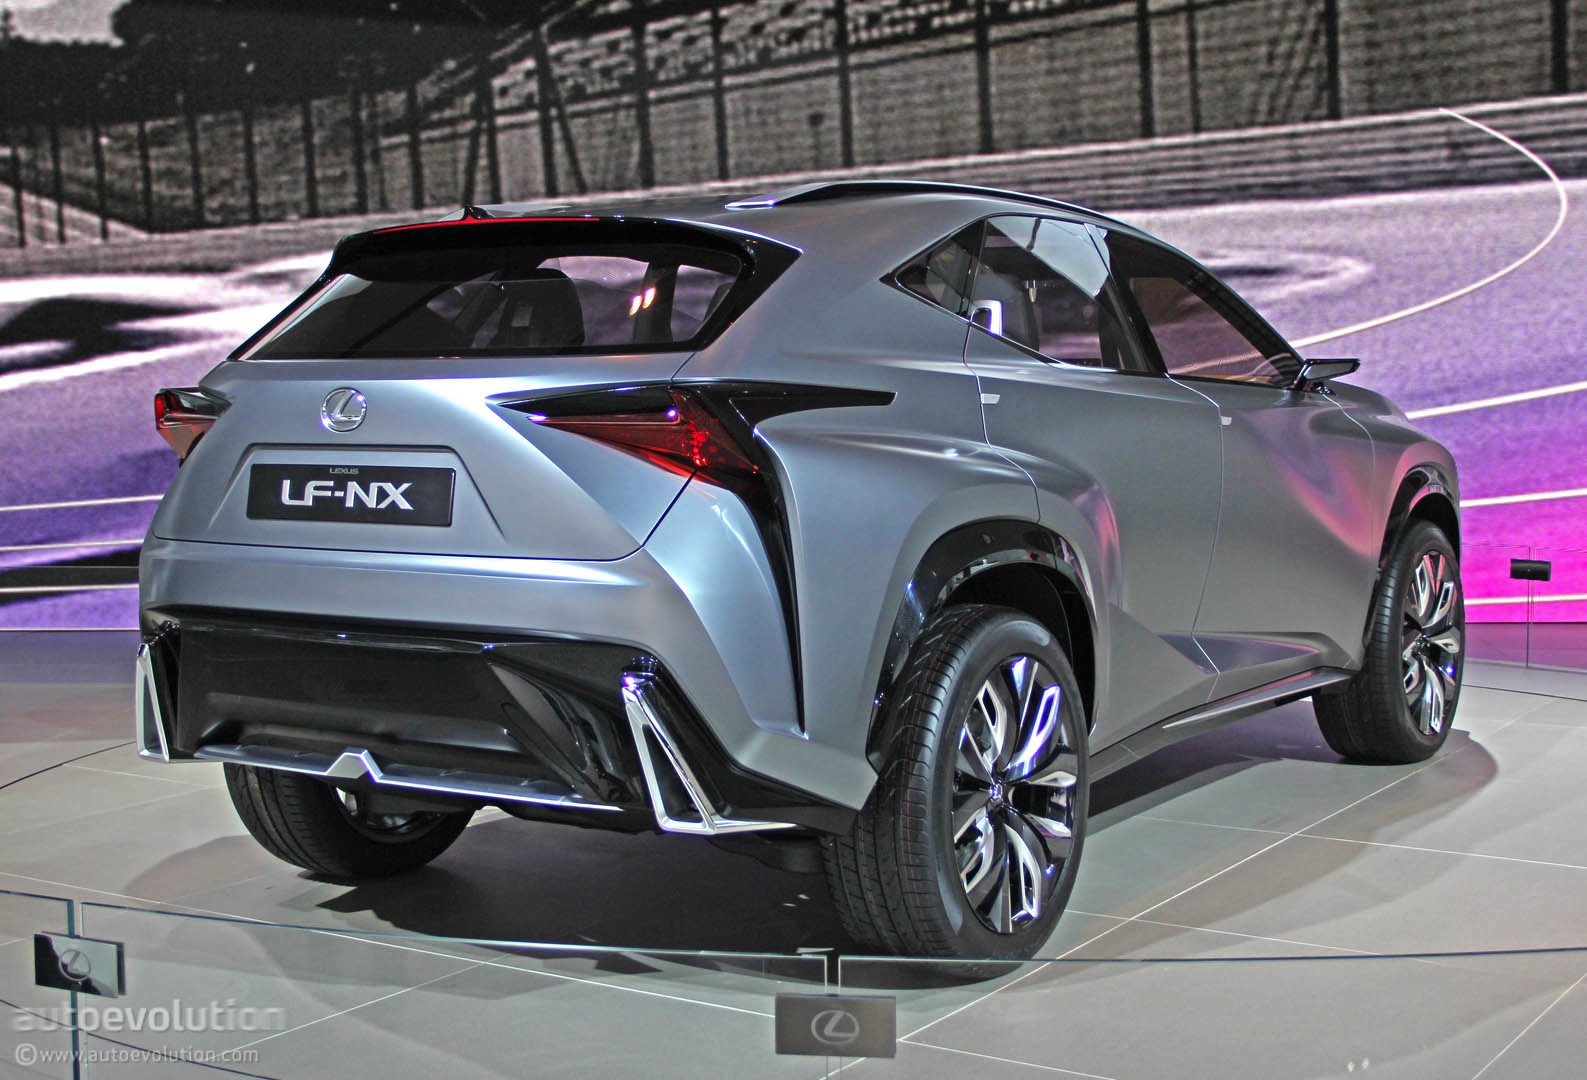 Upcoming Car Shows >> Lexus LF-NX Turbo Concept Lands in Detroit [Live Photos] - autoevolution